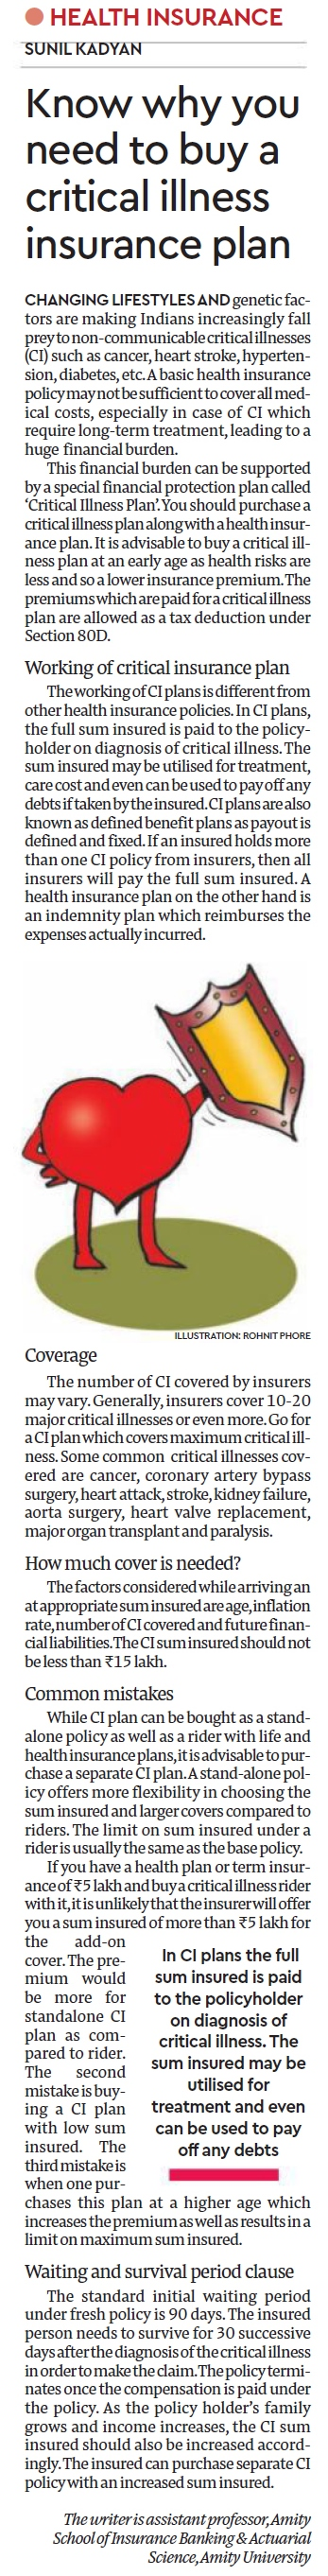 Article by Sunil Kadyan Faculty ASIBAS on critical insurance - Amity Events